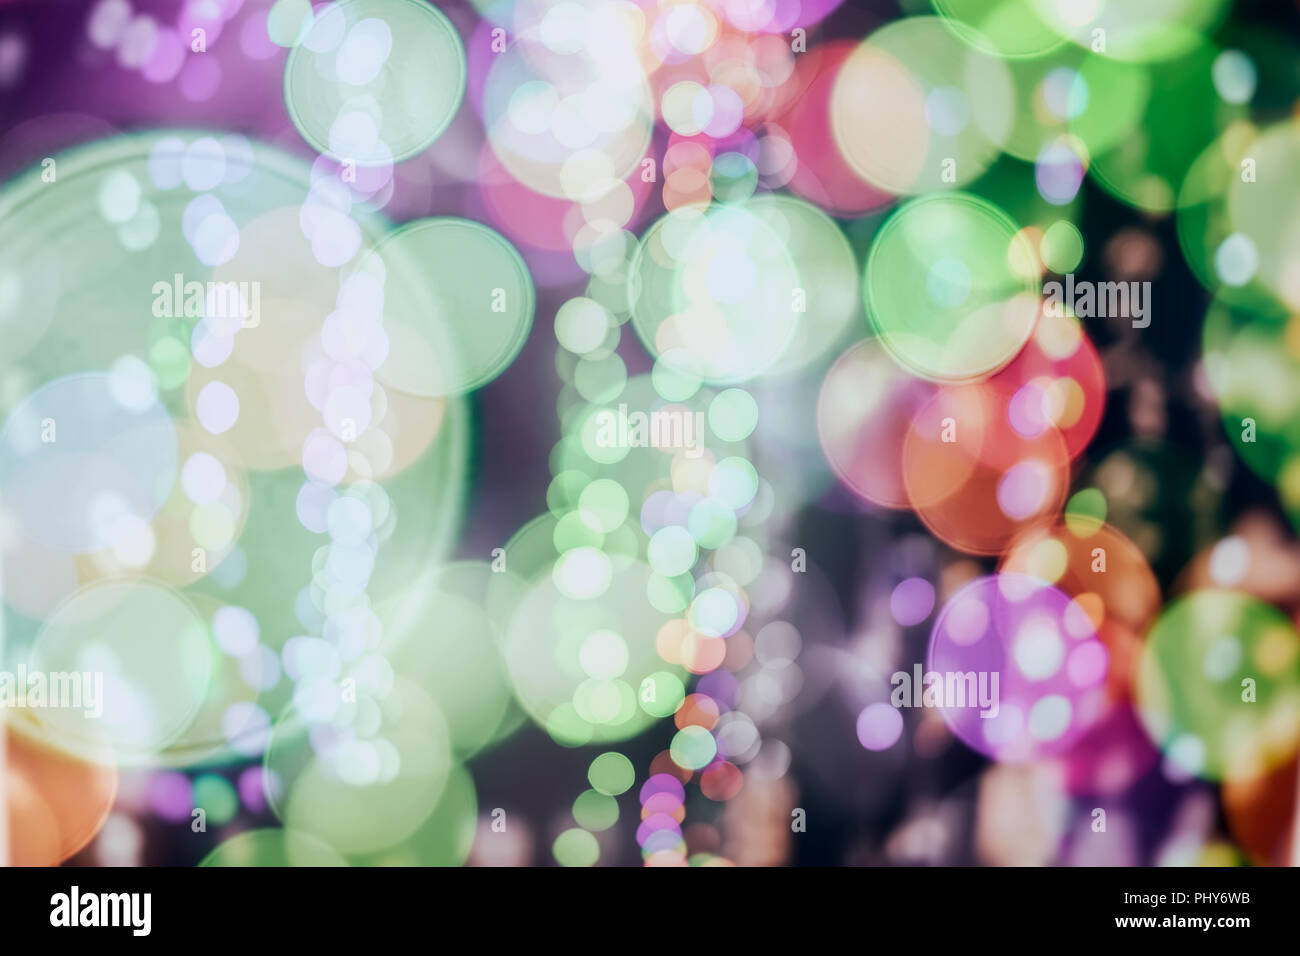 Christmas abstract background, bright colorful bokeh, glowing festive glitter, for design, different topics - Stock Image